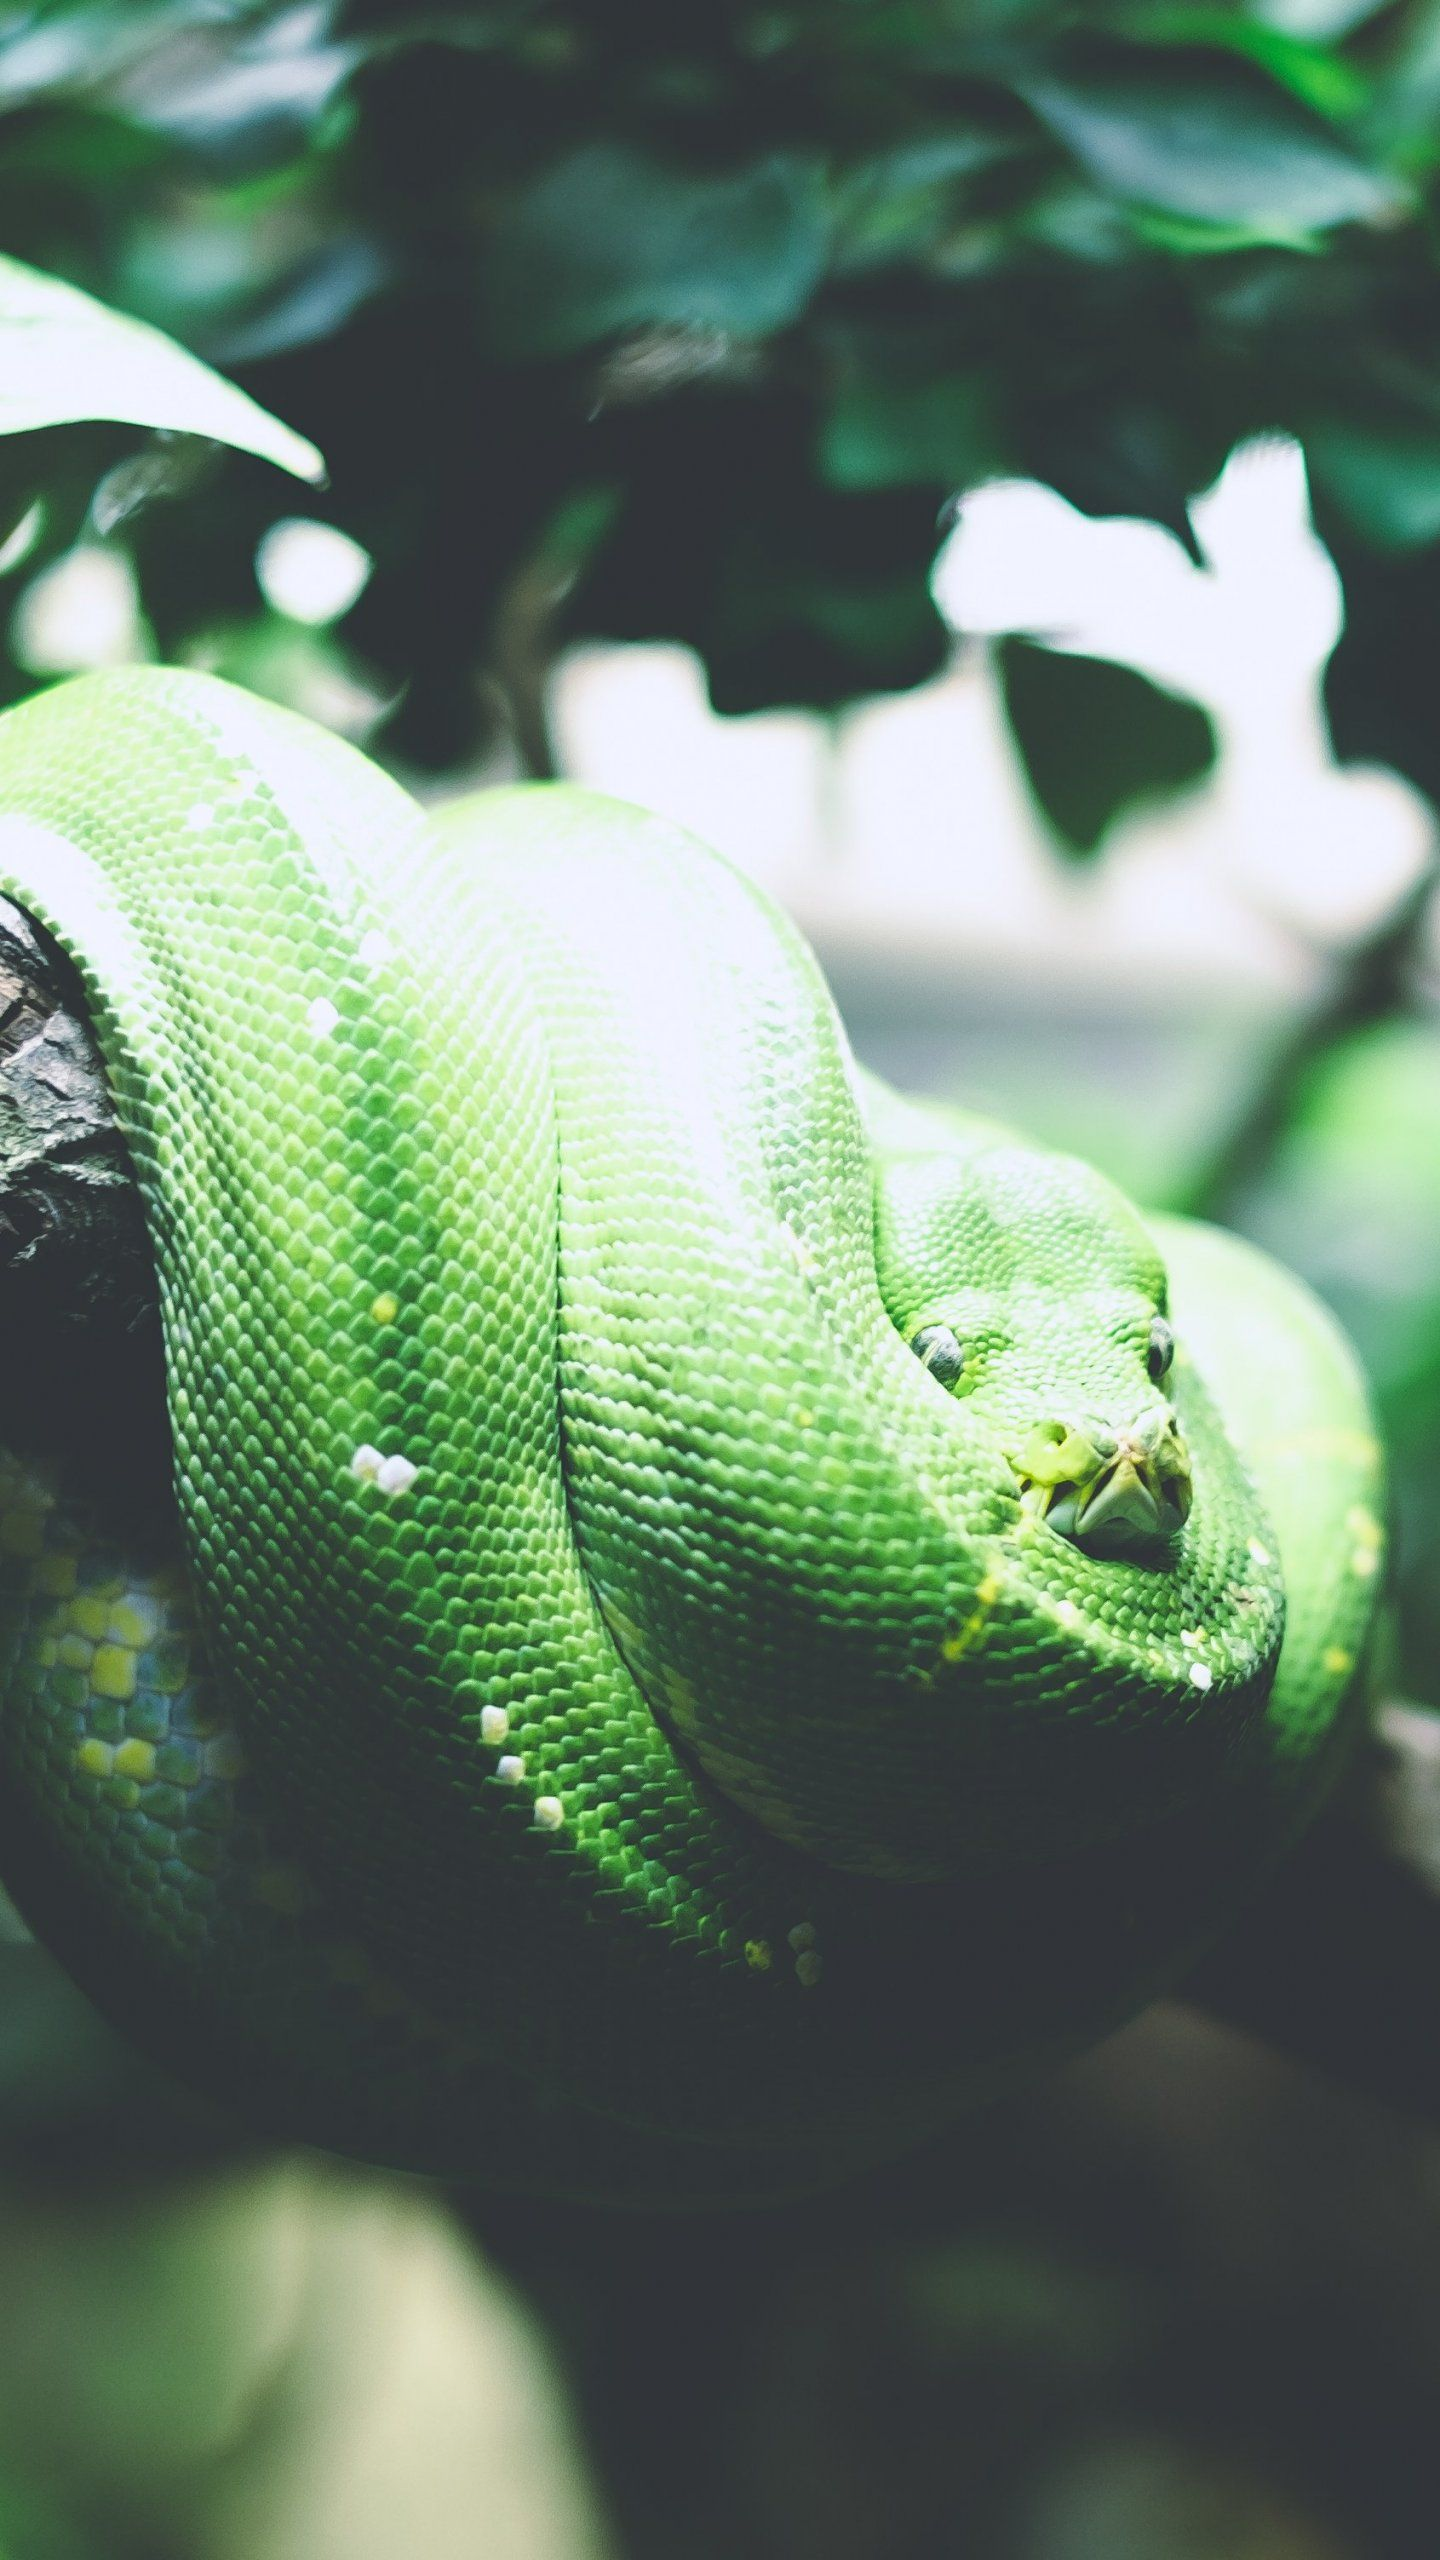 Tree Snake Wallpaper iPhone, Android & Desktop